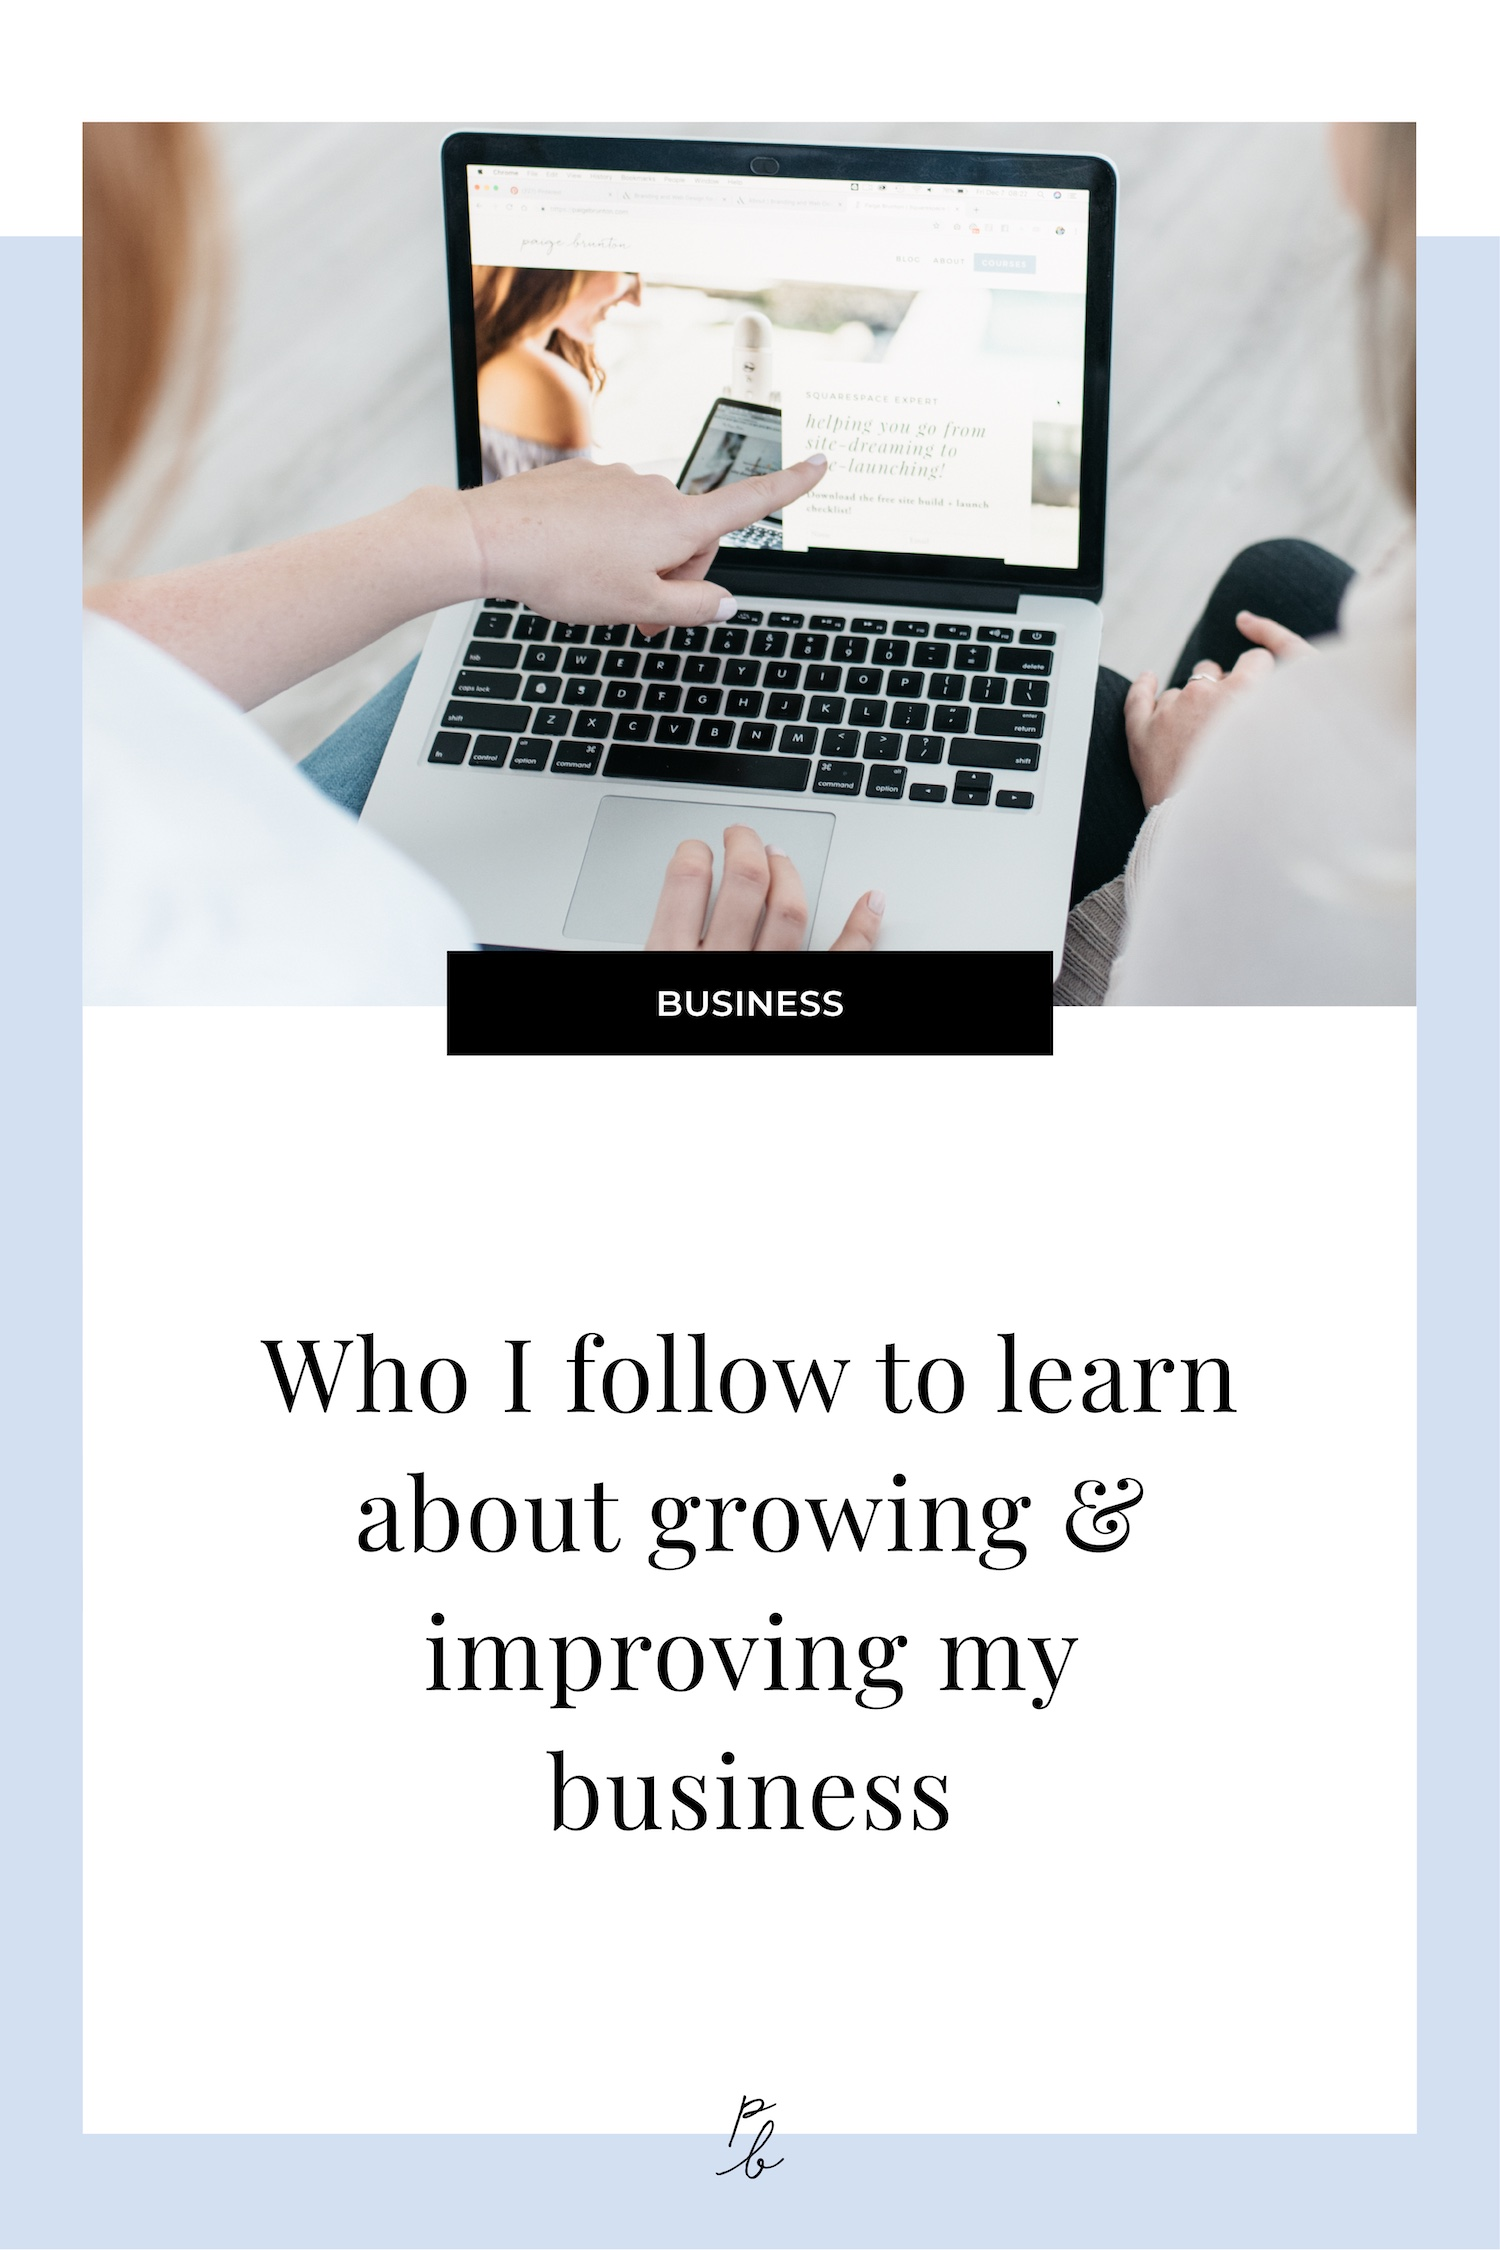 Who I follow to learn about growing and improving my business.jpg